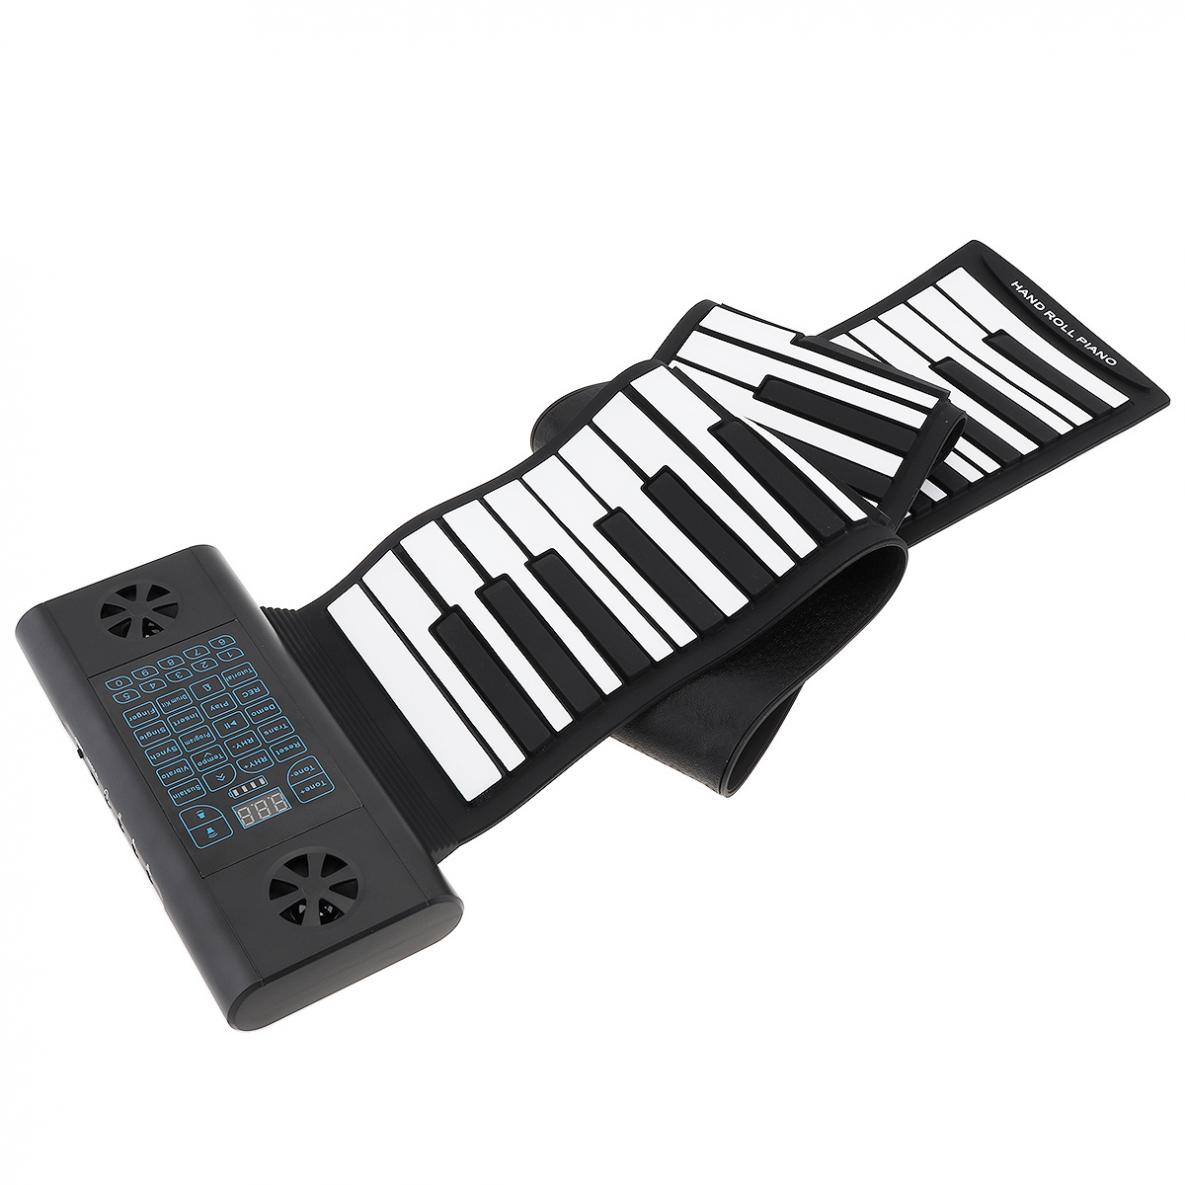 88 Keys MIDI Roll Up Piano Rechargeable Electronic Silicone Flexible Keyboard Organ Built-in 2 Speakers with Accessories enlarge